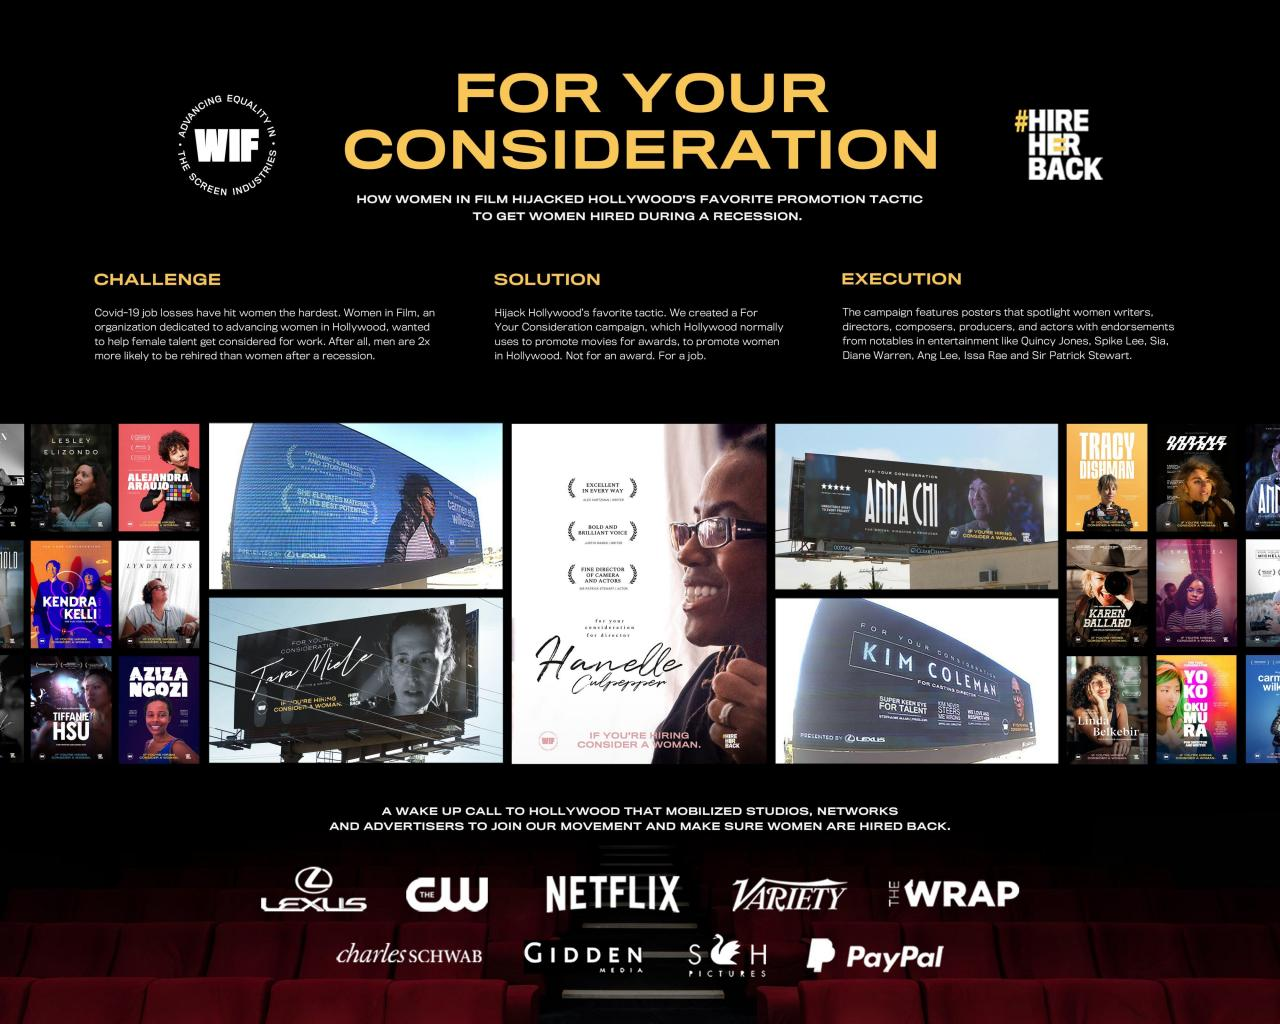 Women In Film: For Your Consideration